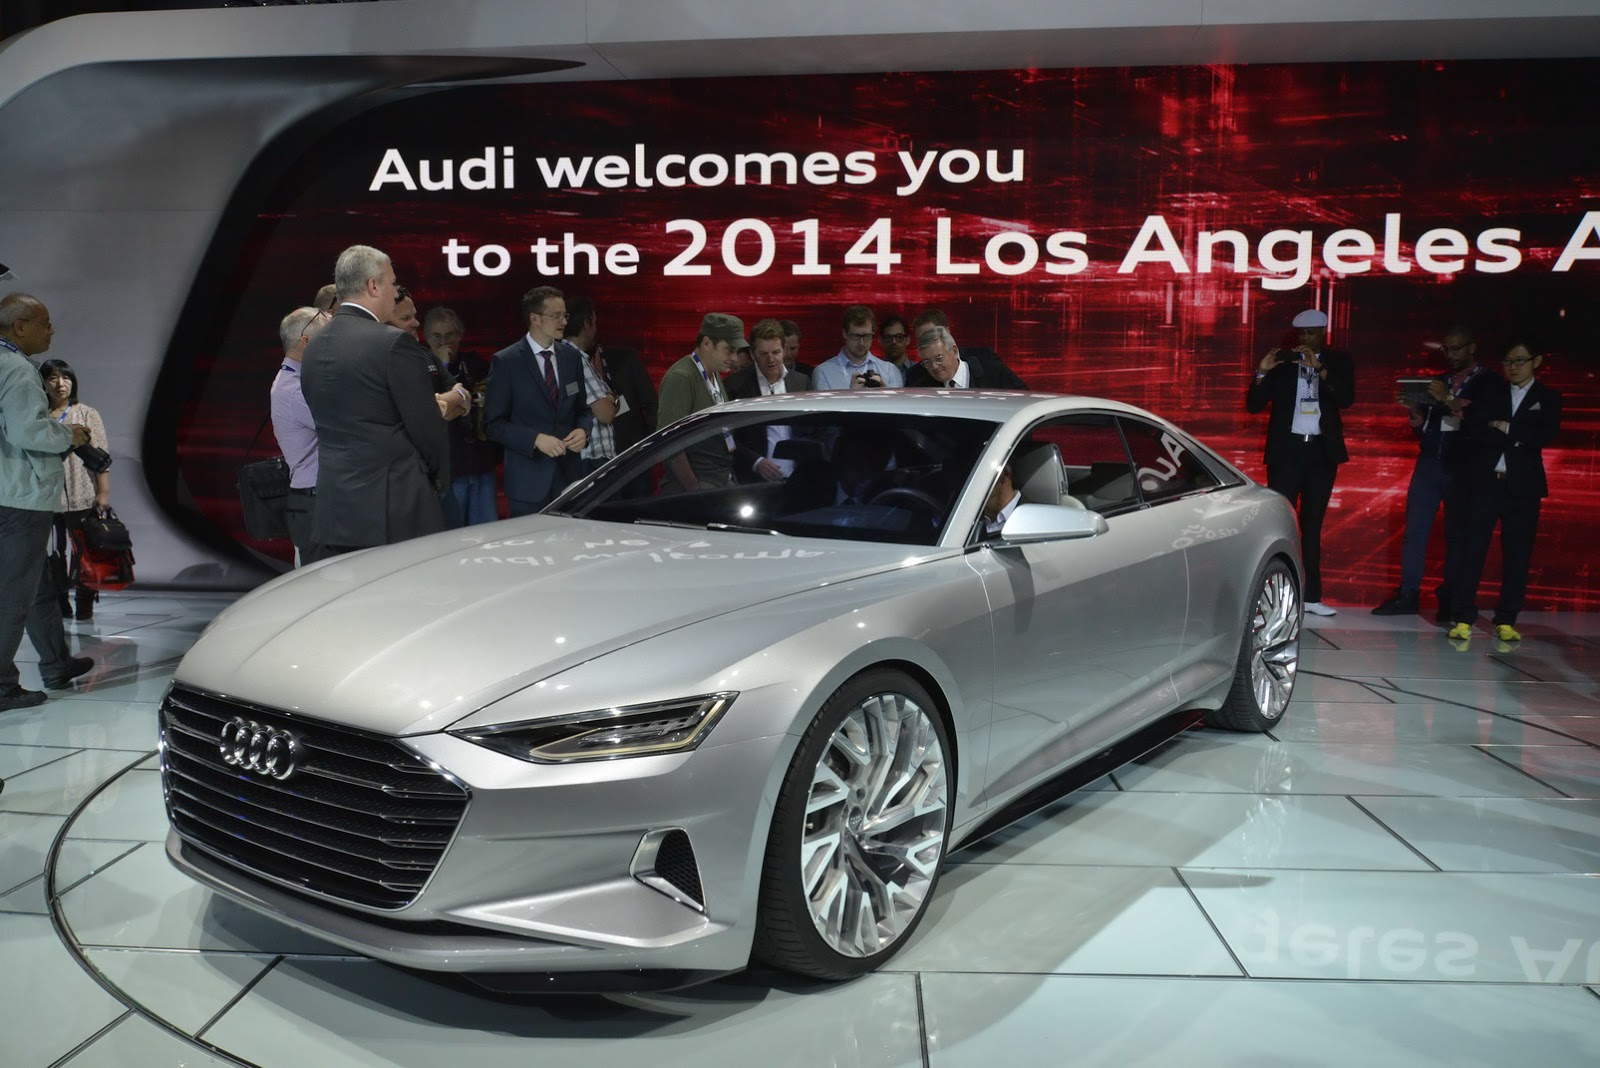 Audi Prologue Coupe Concept is Ingolstadt's S-Class Coupe